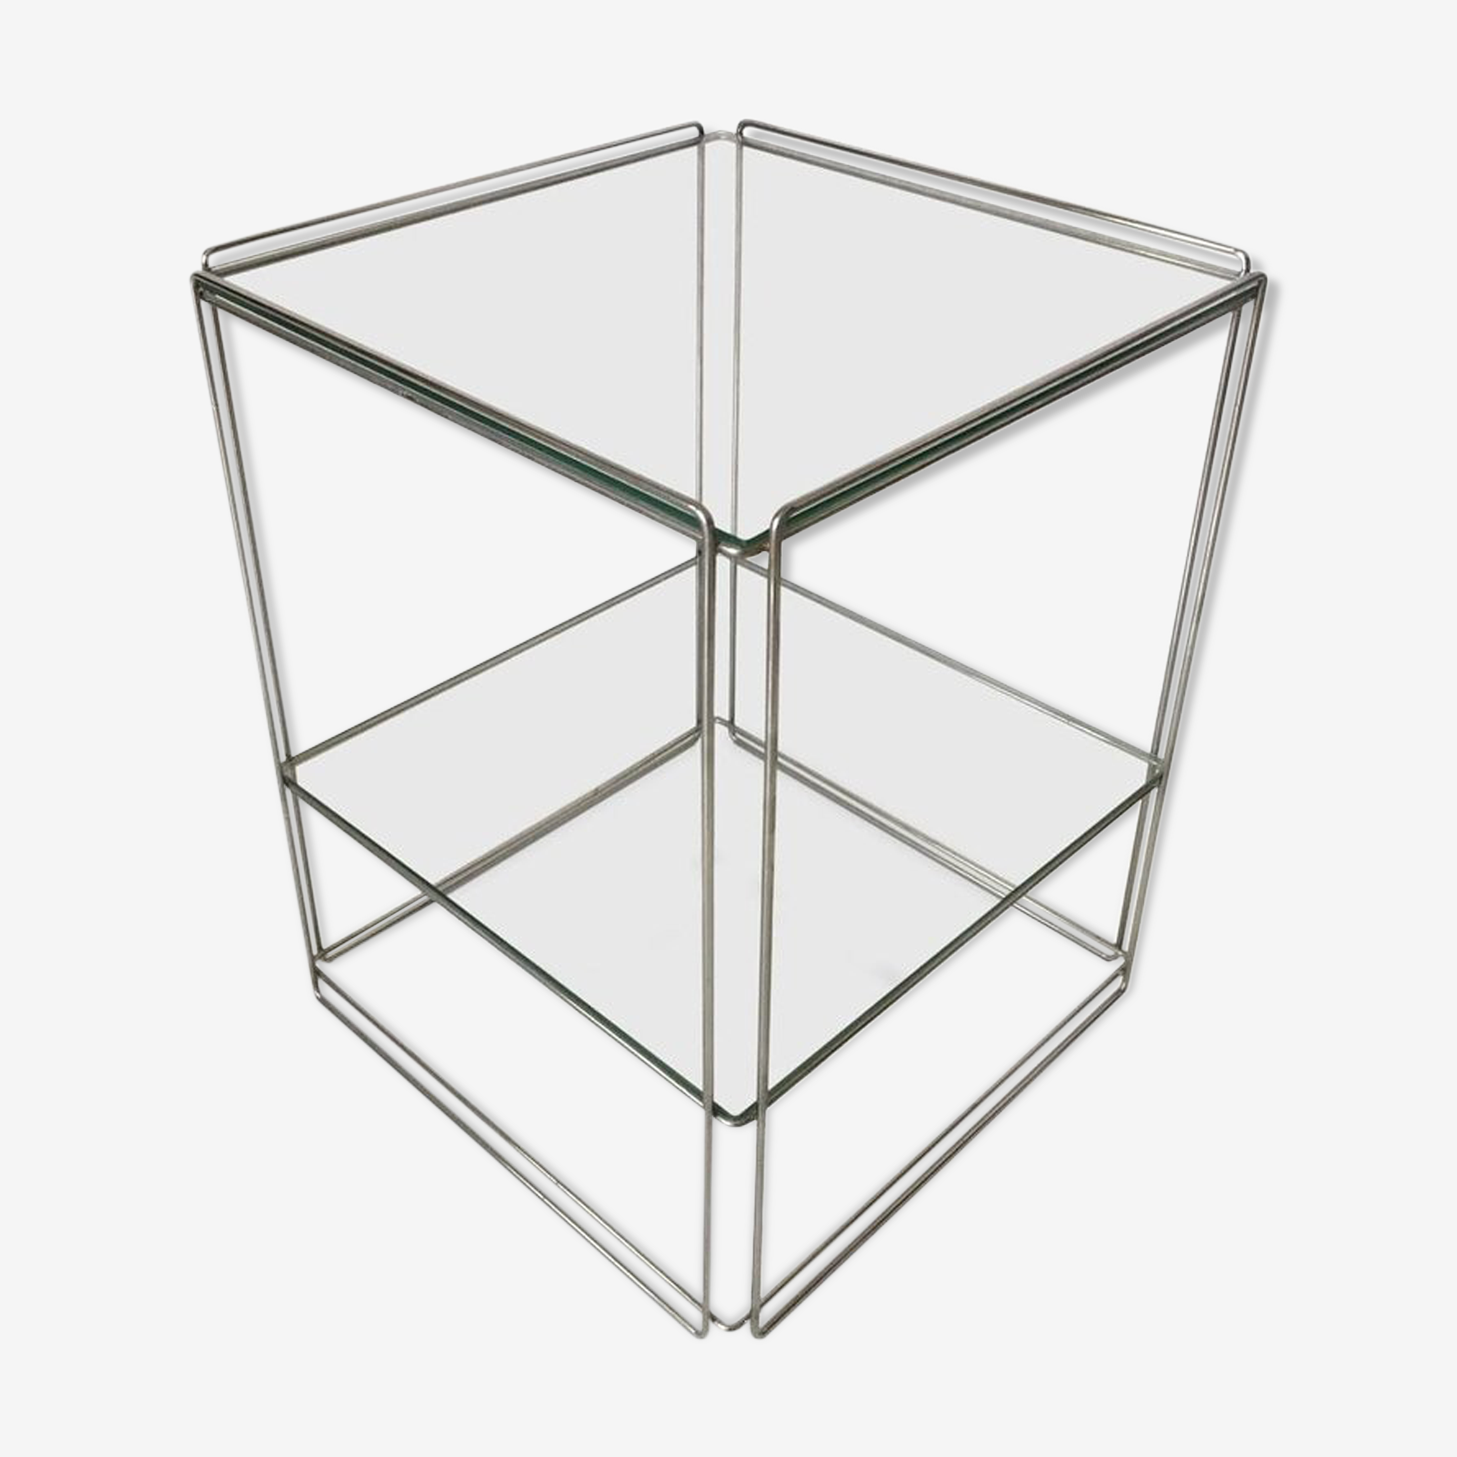 Two-tiered silver side table, circa 1960